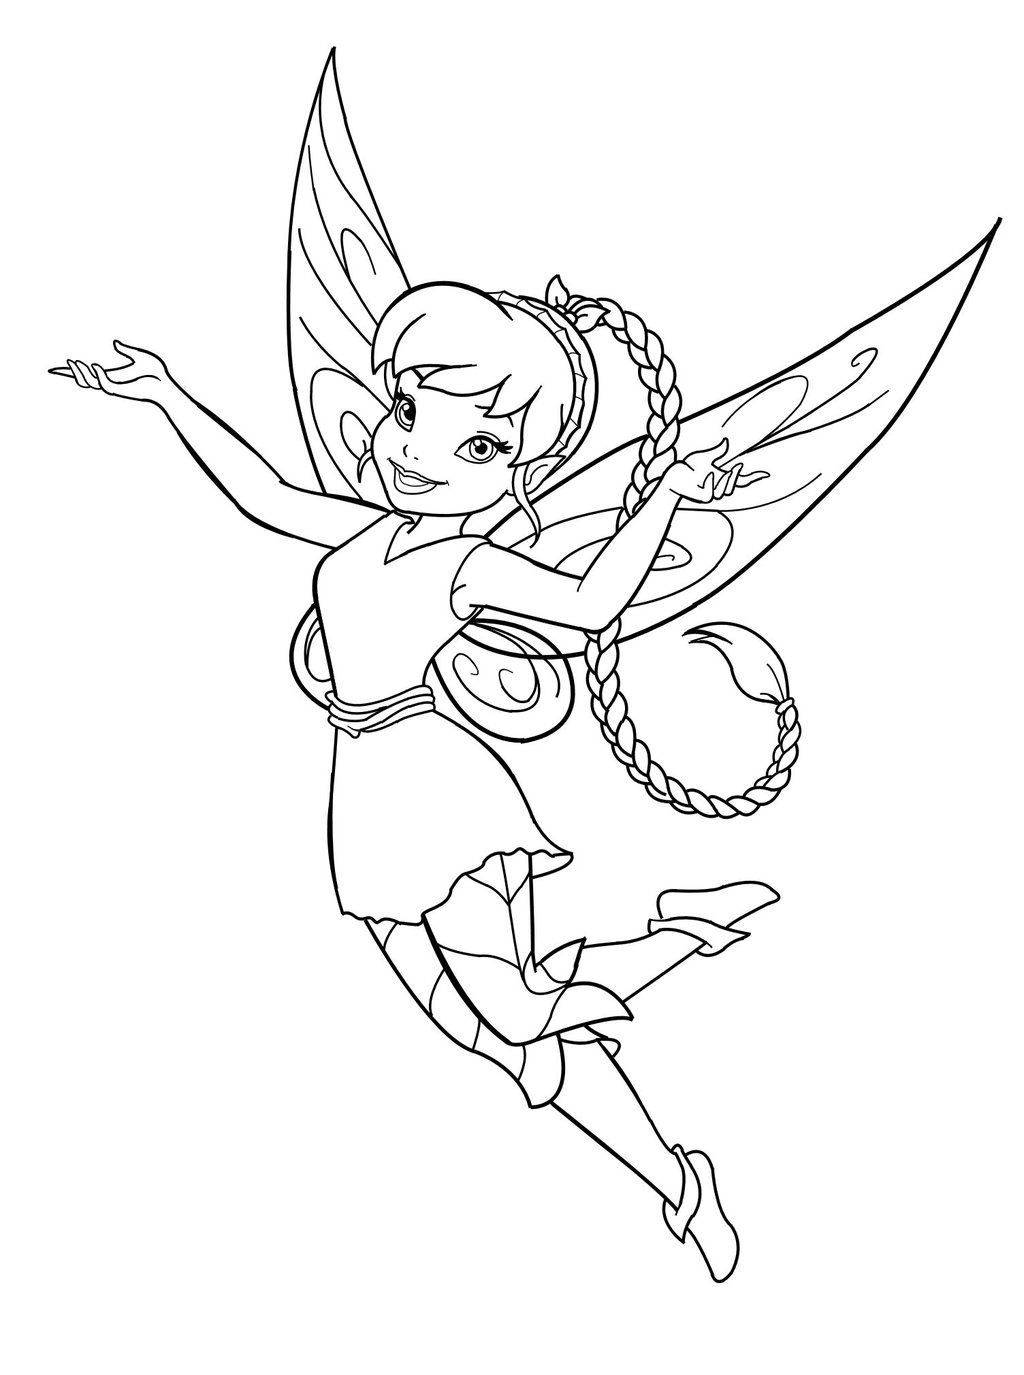 Free Printable Fairy Coloring Pages For Kids Tinkerbell Coloring Pages Fairy Coloring Book Fairy Coloring